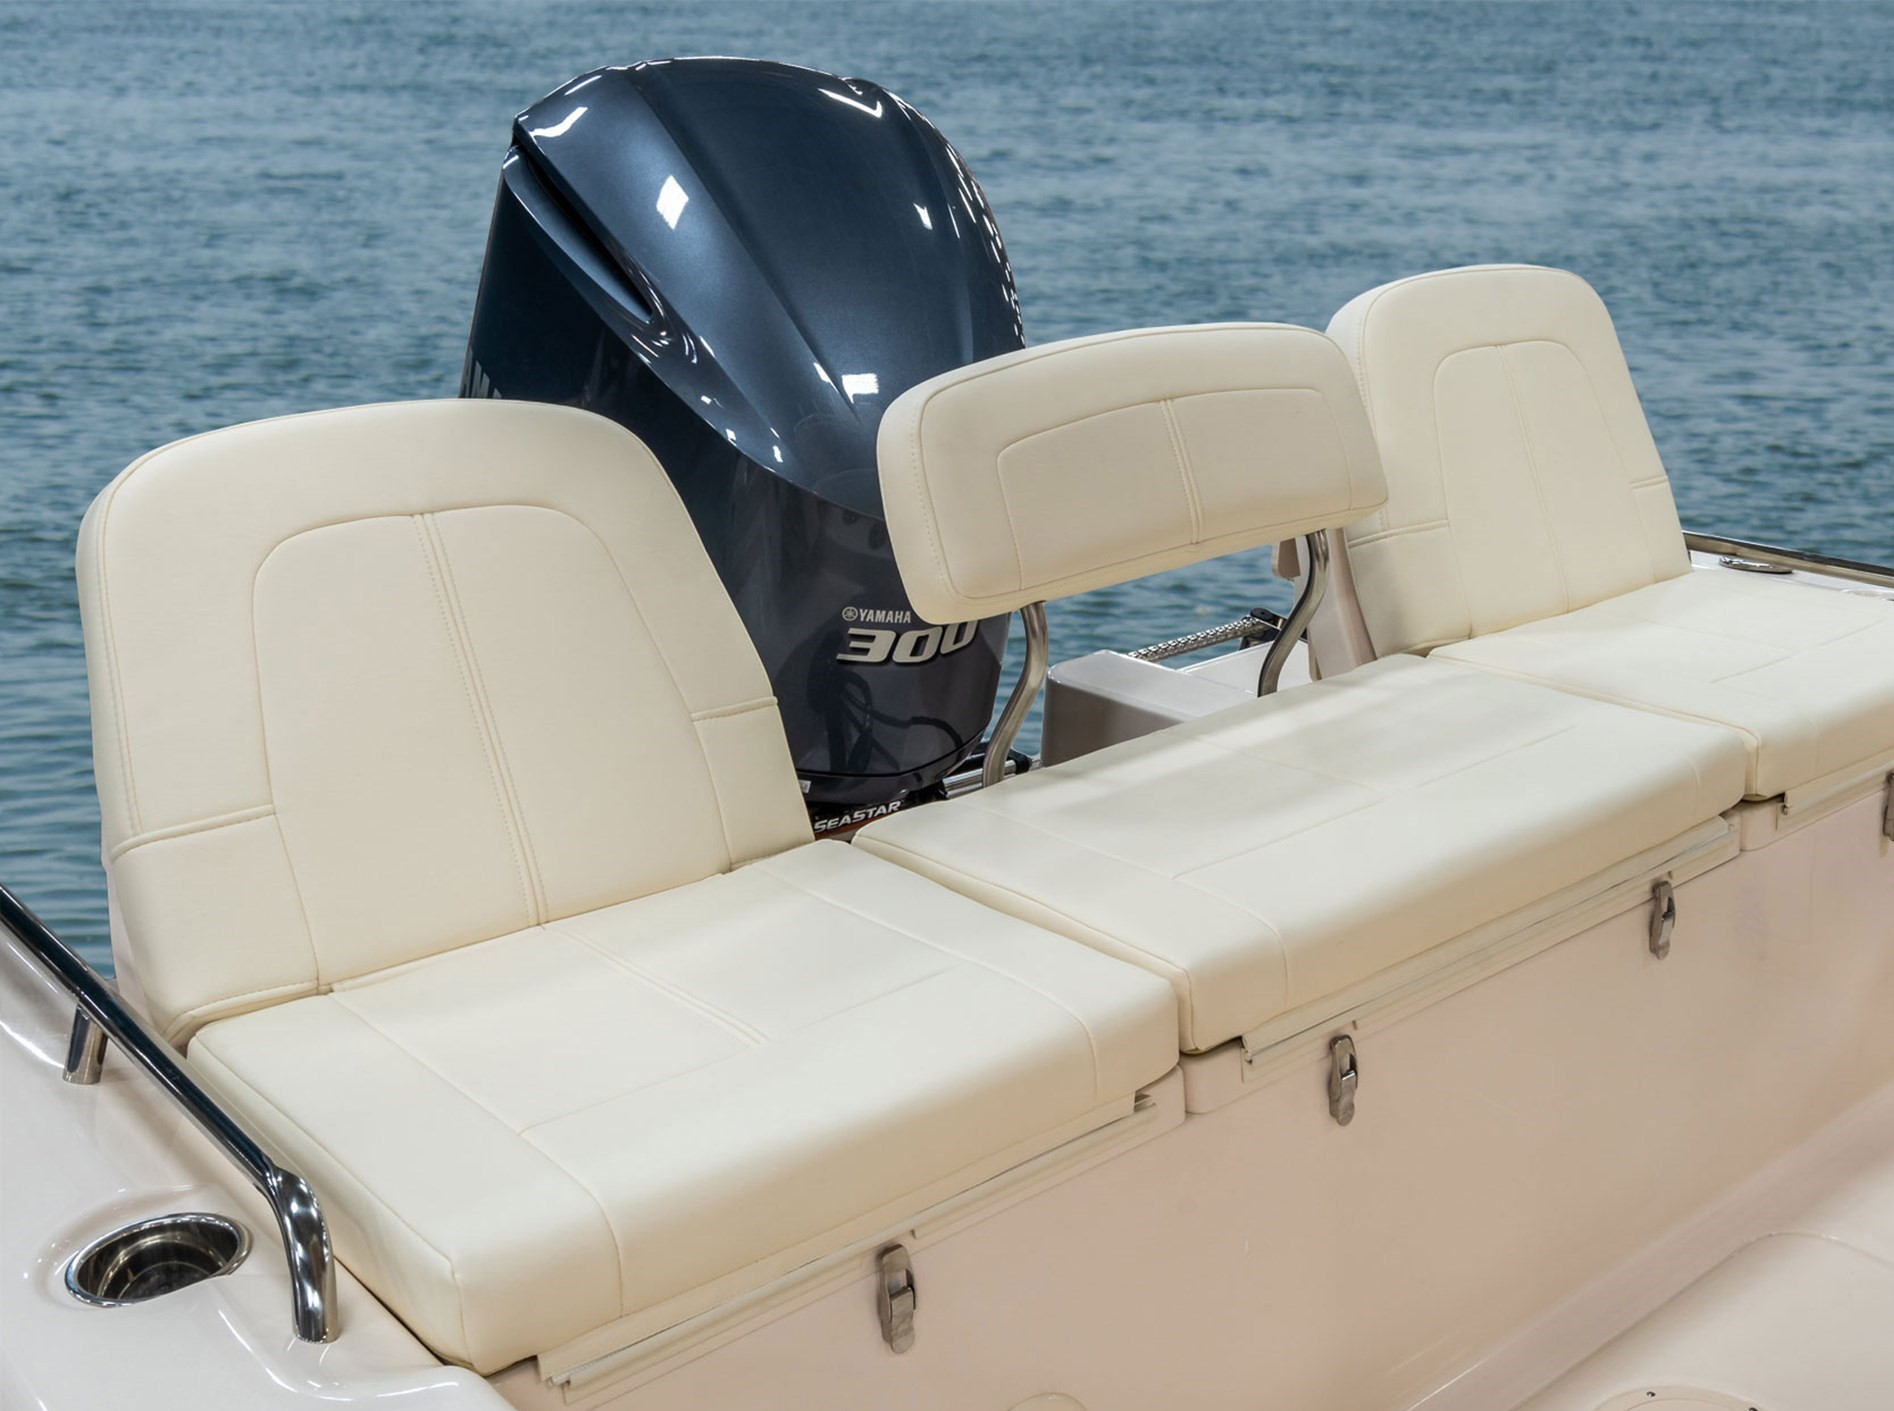 Grady-White 251 CE, 25-foot coastal explorer aft bench seat with port and starboard folding backrests and under seat drop-in boxes